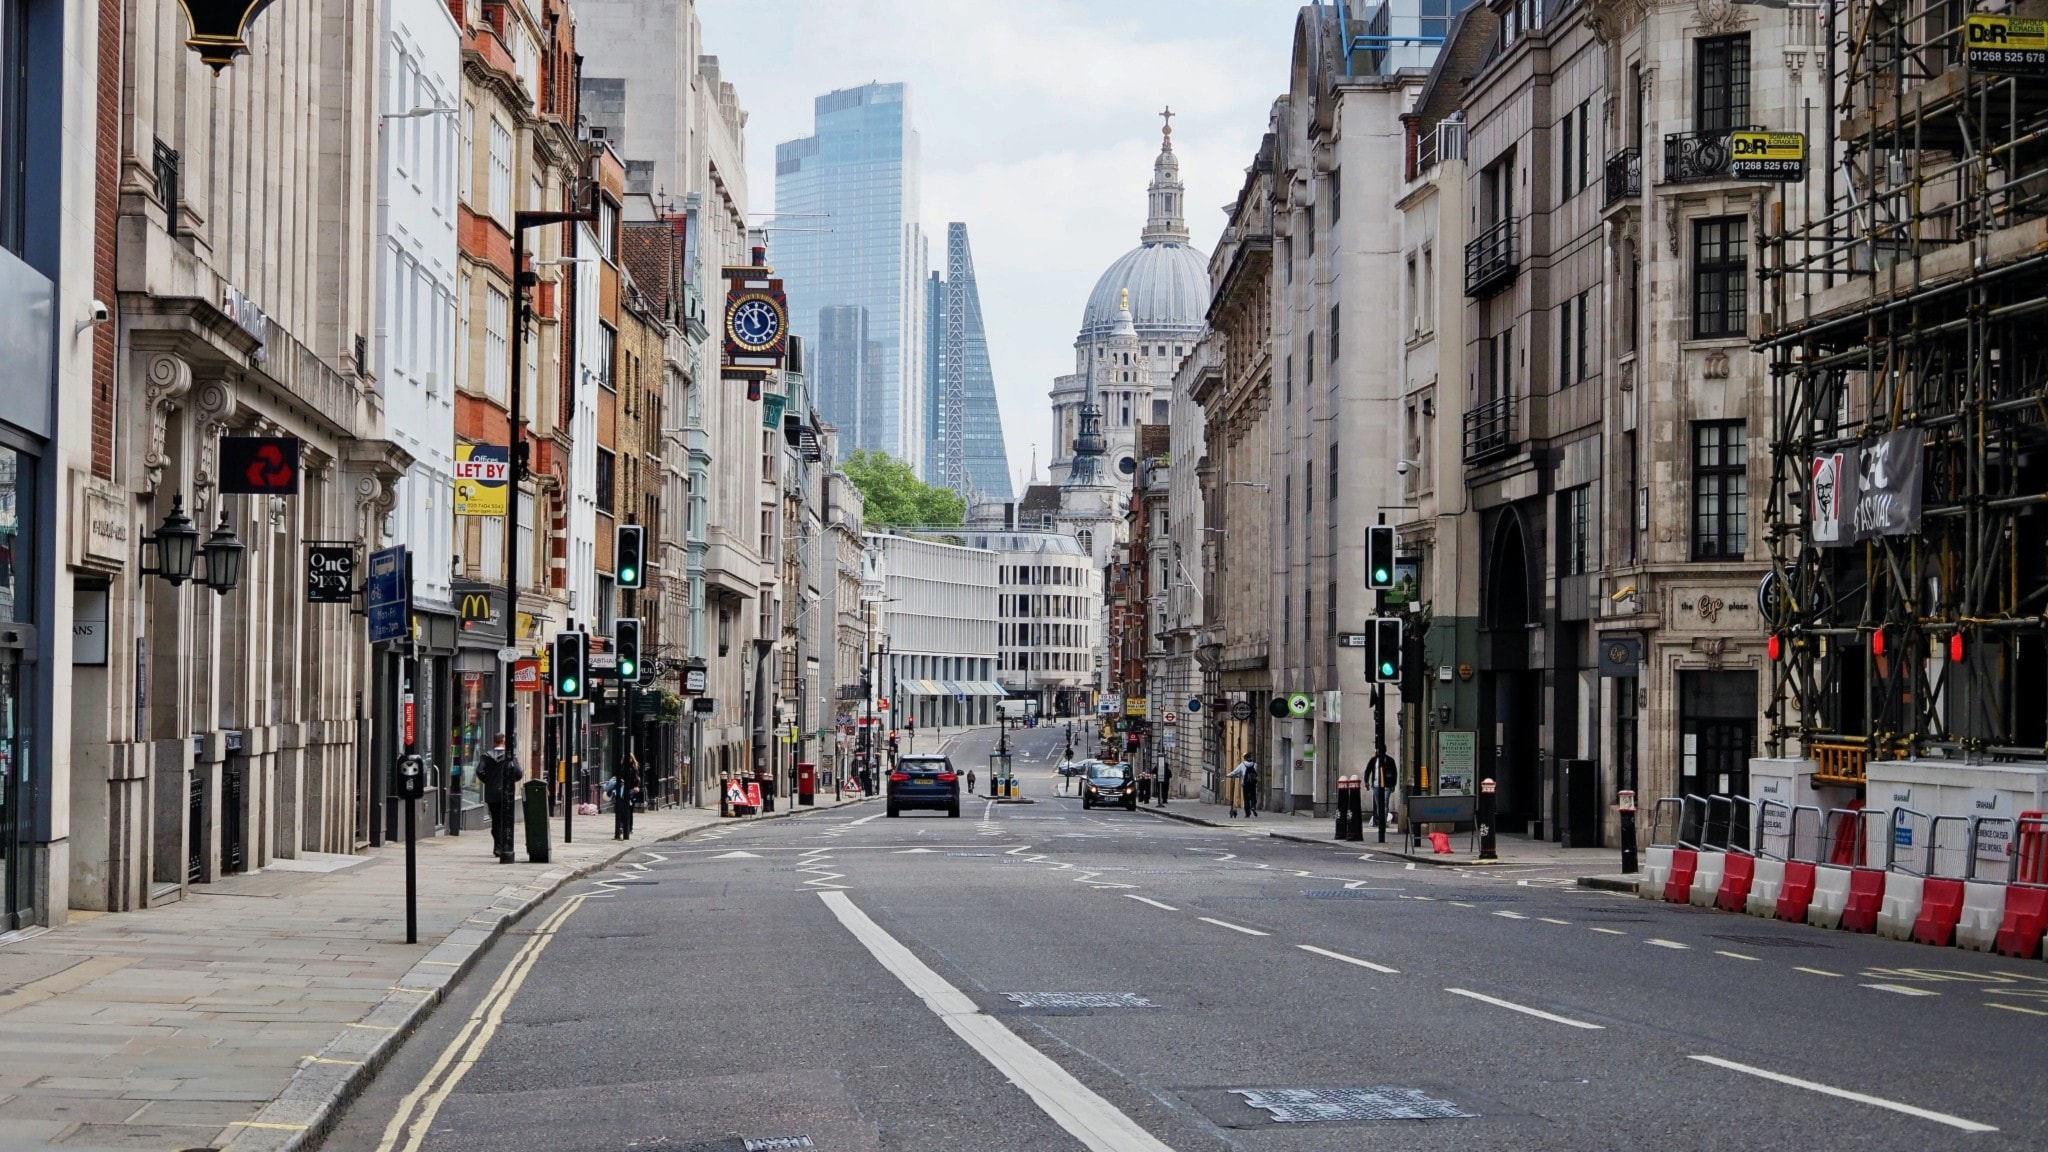 Lockdown i London. Öde Fleet Street i maj 2020.